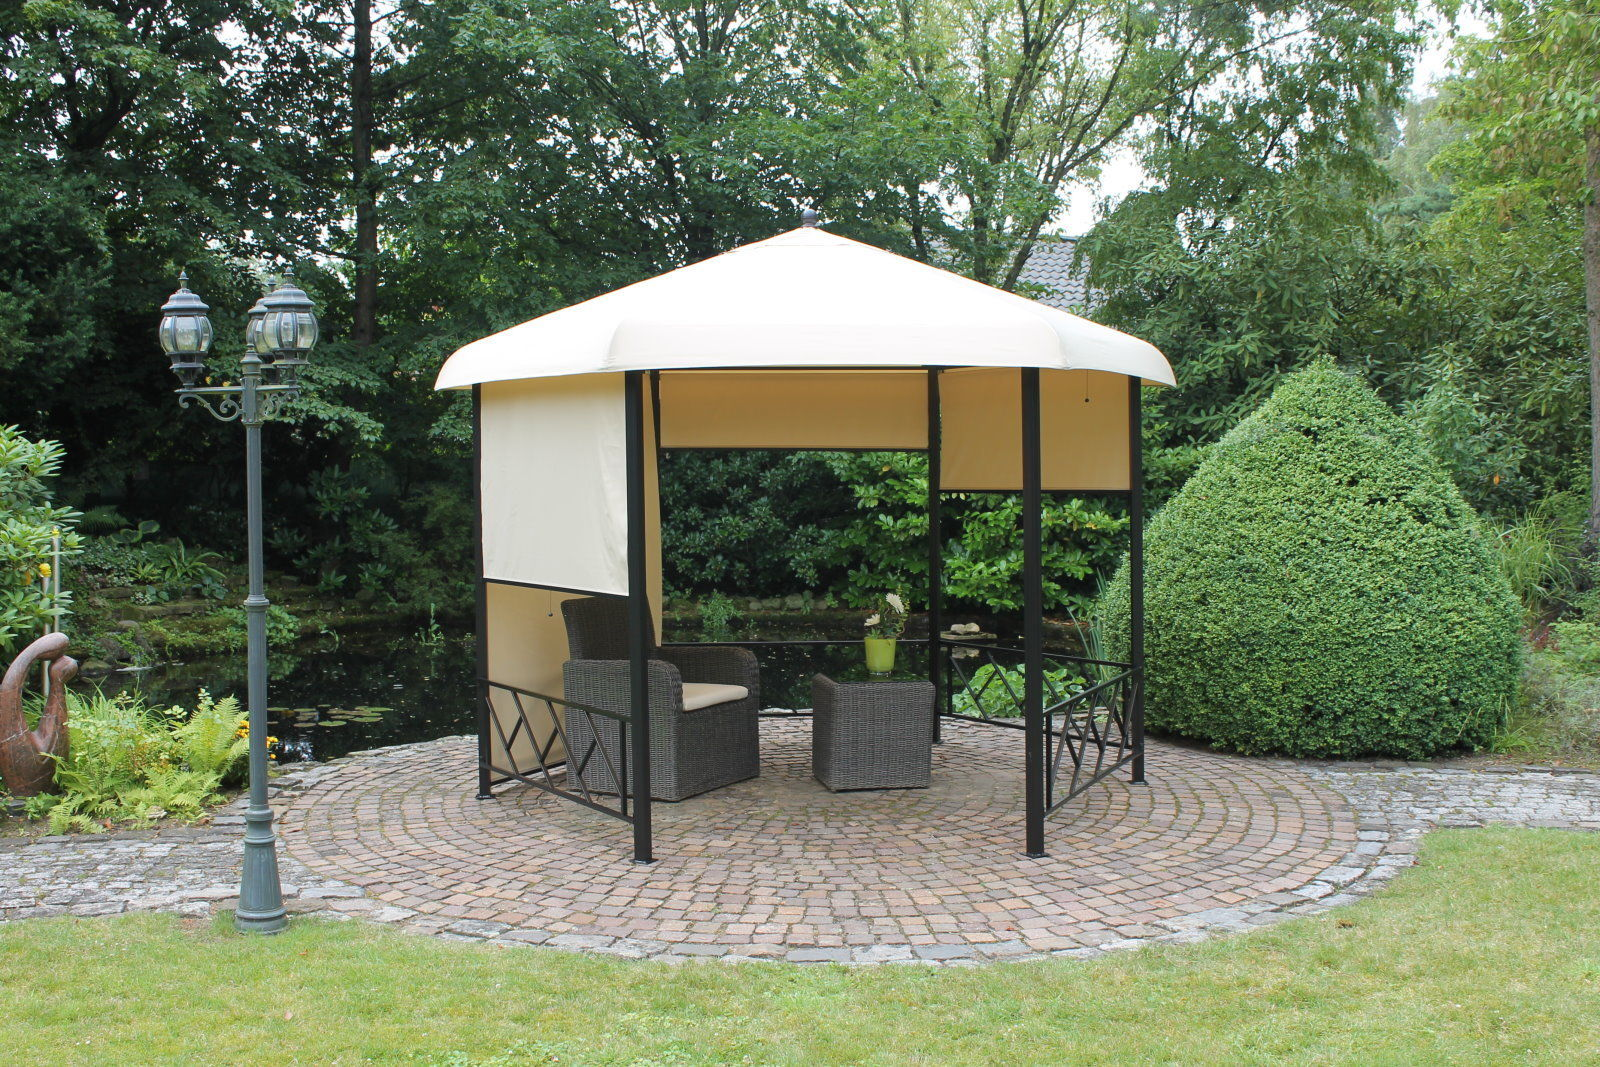 leco 6 eck pavillon rollos garten zelt festzelt partyzelt sonnenschutz natur ebay. Black Bedroom Furniture Sets. Home Design Ideas